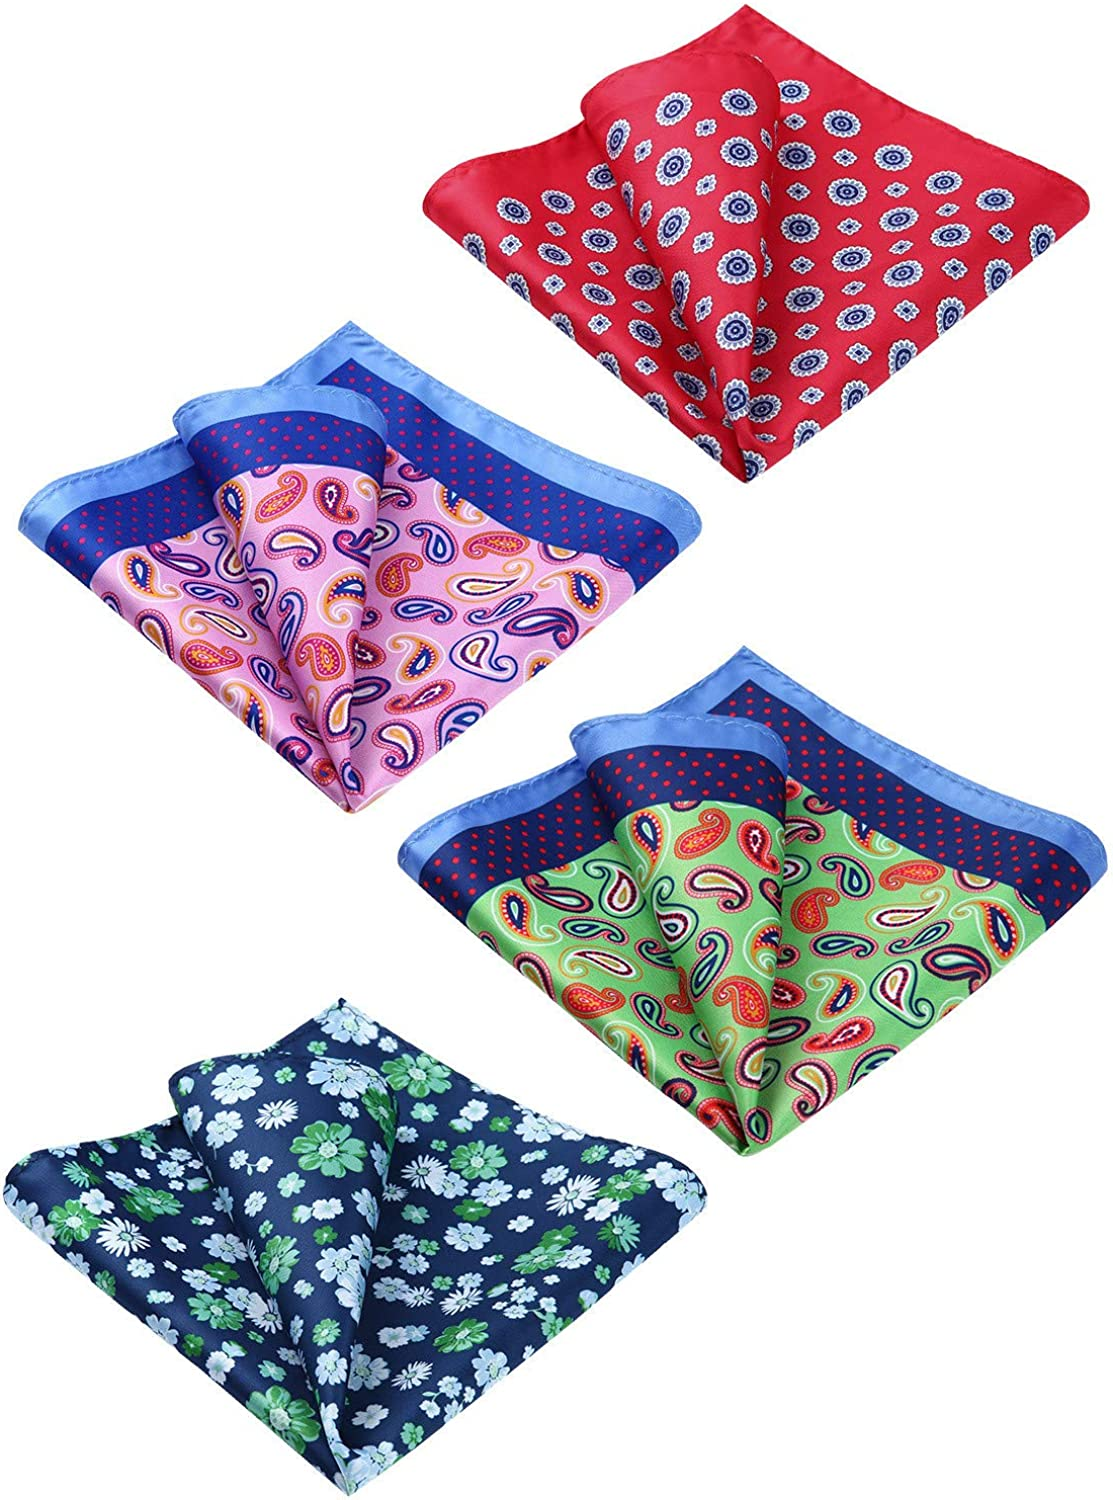 HISDERN 4 Pieces Pocket Square for men Paisley Floral Printed Handkerchief Set Assorted Woven Hanky Wedding Party Gift